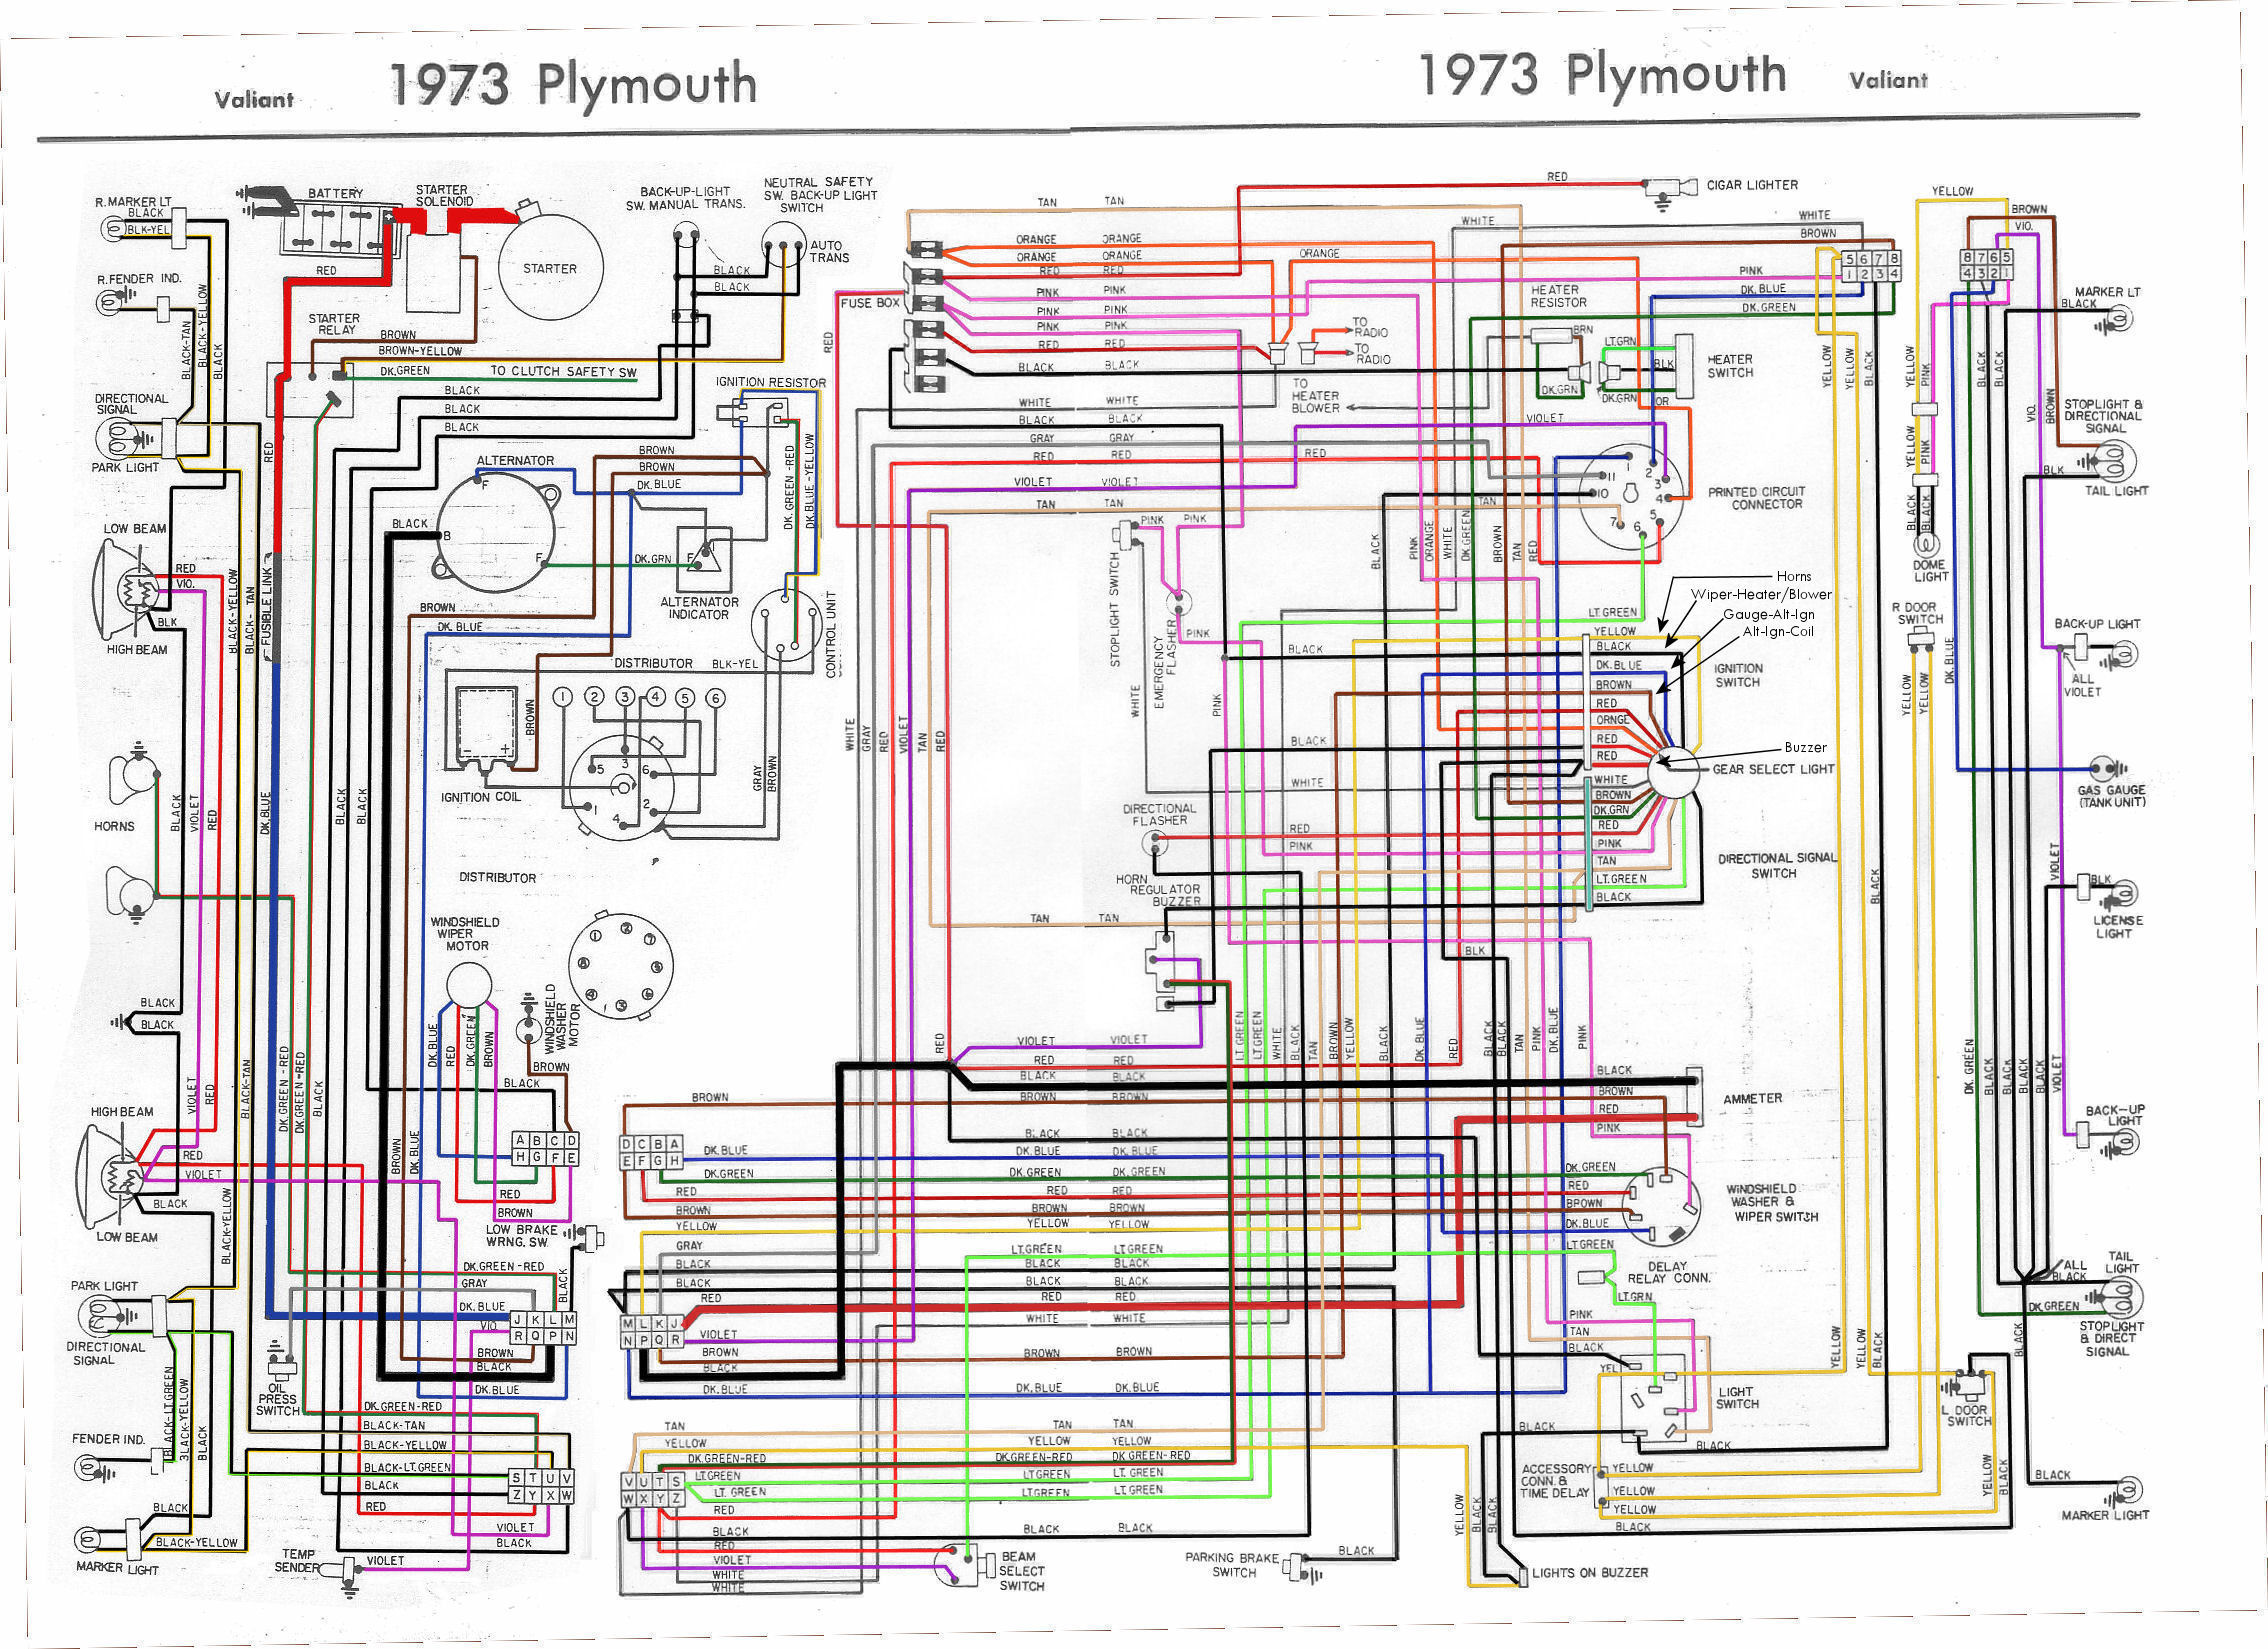 Wiring Diagram 1973 Plymouth Duster Layout Diagrams Camaro Air Conditioning For 73 Get Free Image About Vw Super Beetle